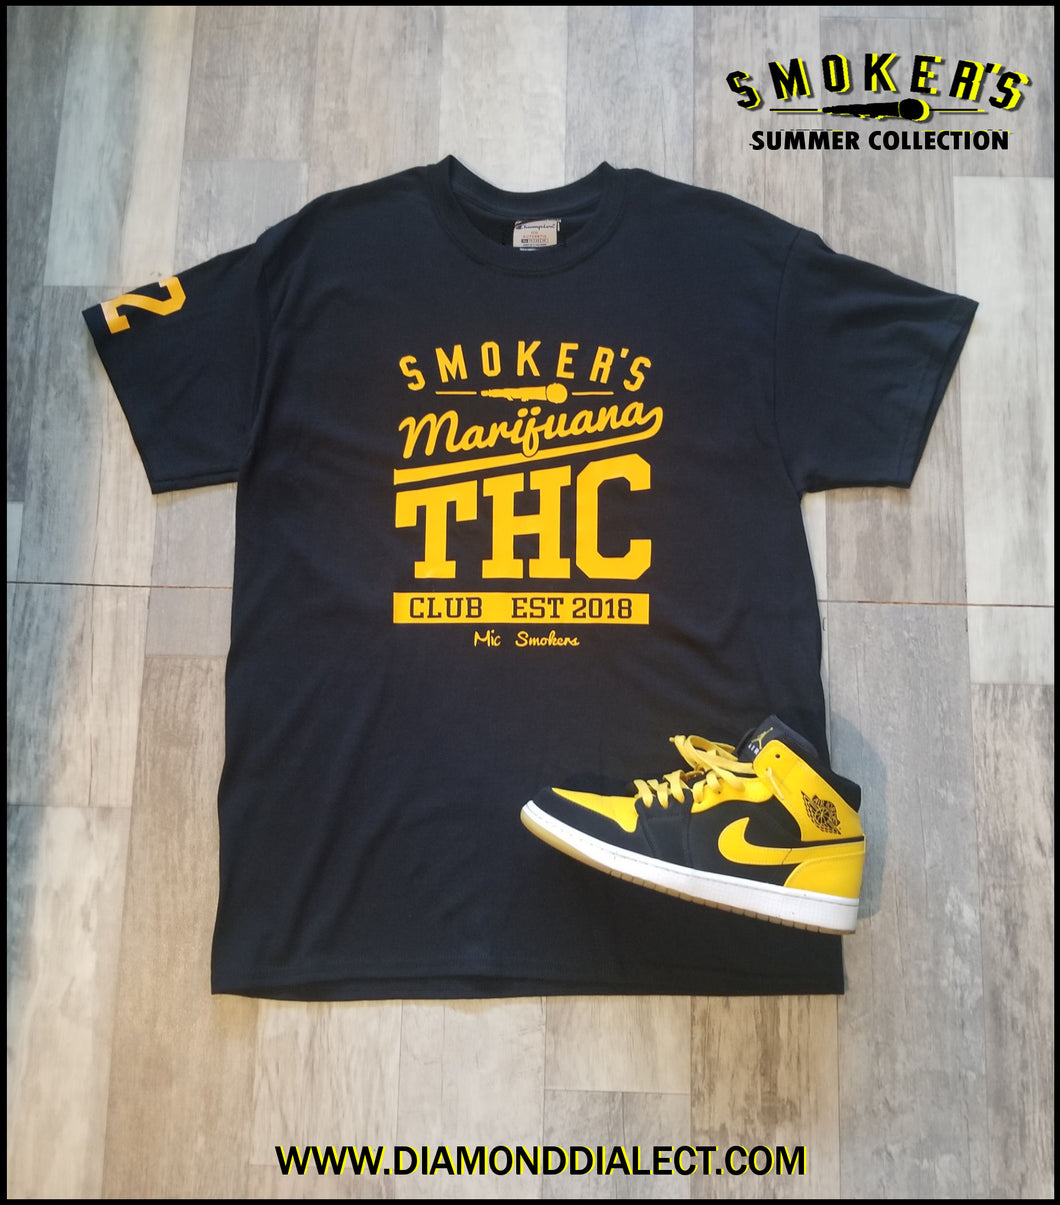 Mic Smokers Champion T-Shirt Bl/Yell